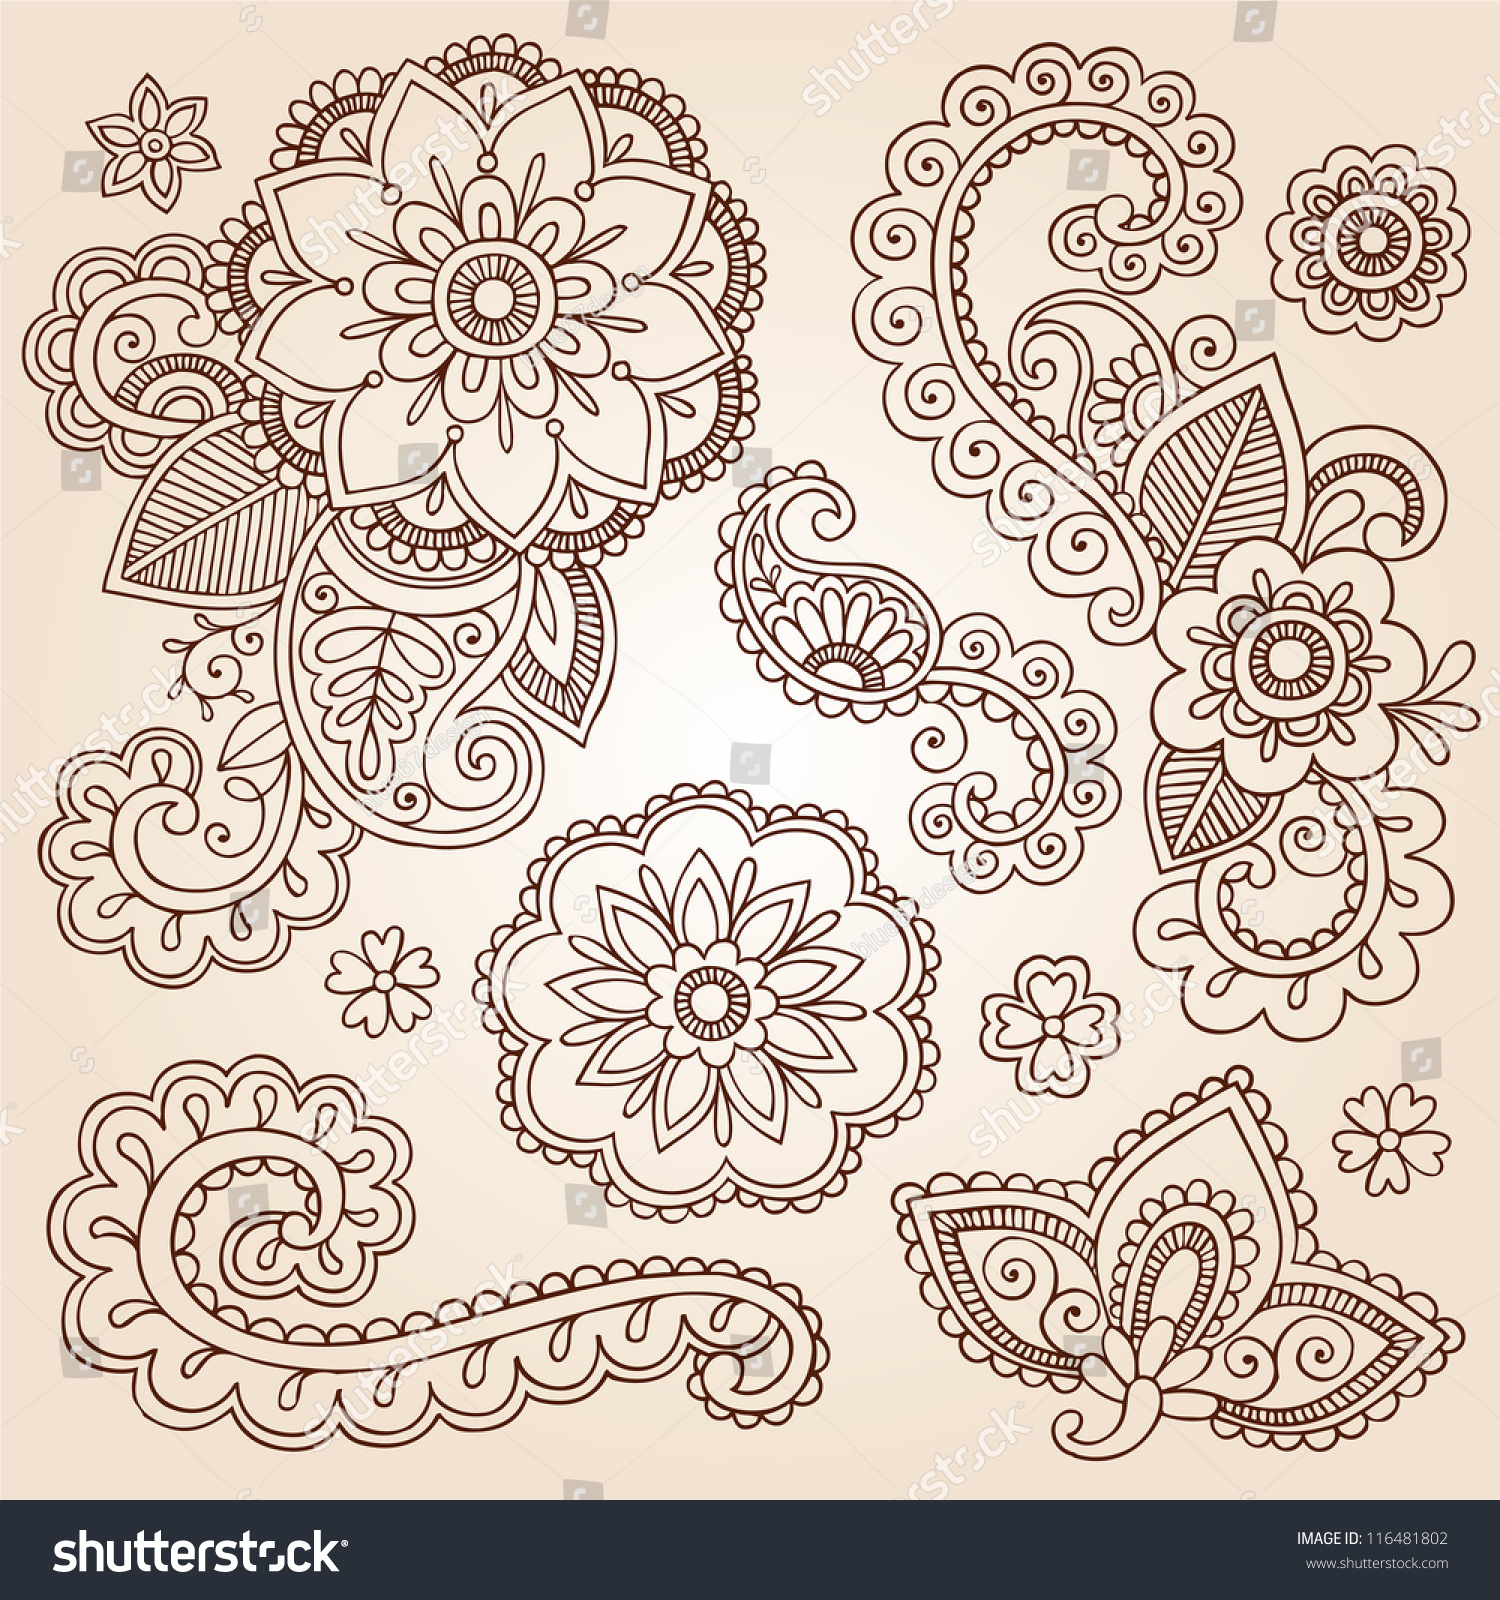 henna paisley flowers mehndi tattoo doodles stock vector 116481802 shutterstock. Black Bedroom Furniture Sets. Home Design Ideas